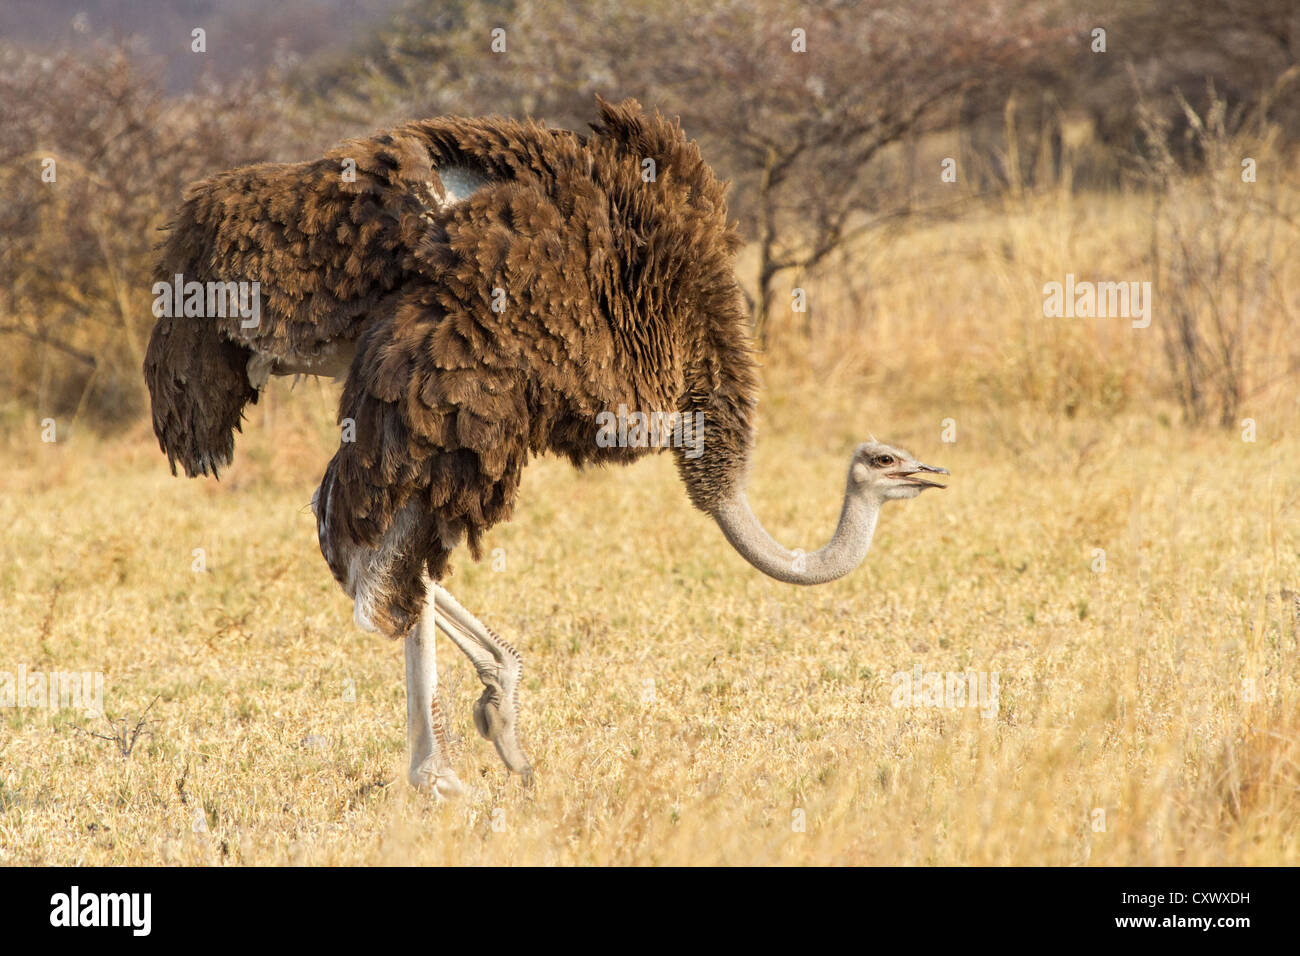 Female ostrich (Struthio camelus) searching for food in dry grass scrubland, Nxai pan, Botswana - Stock Image